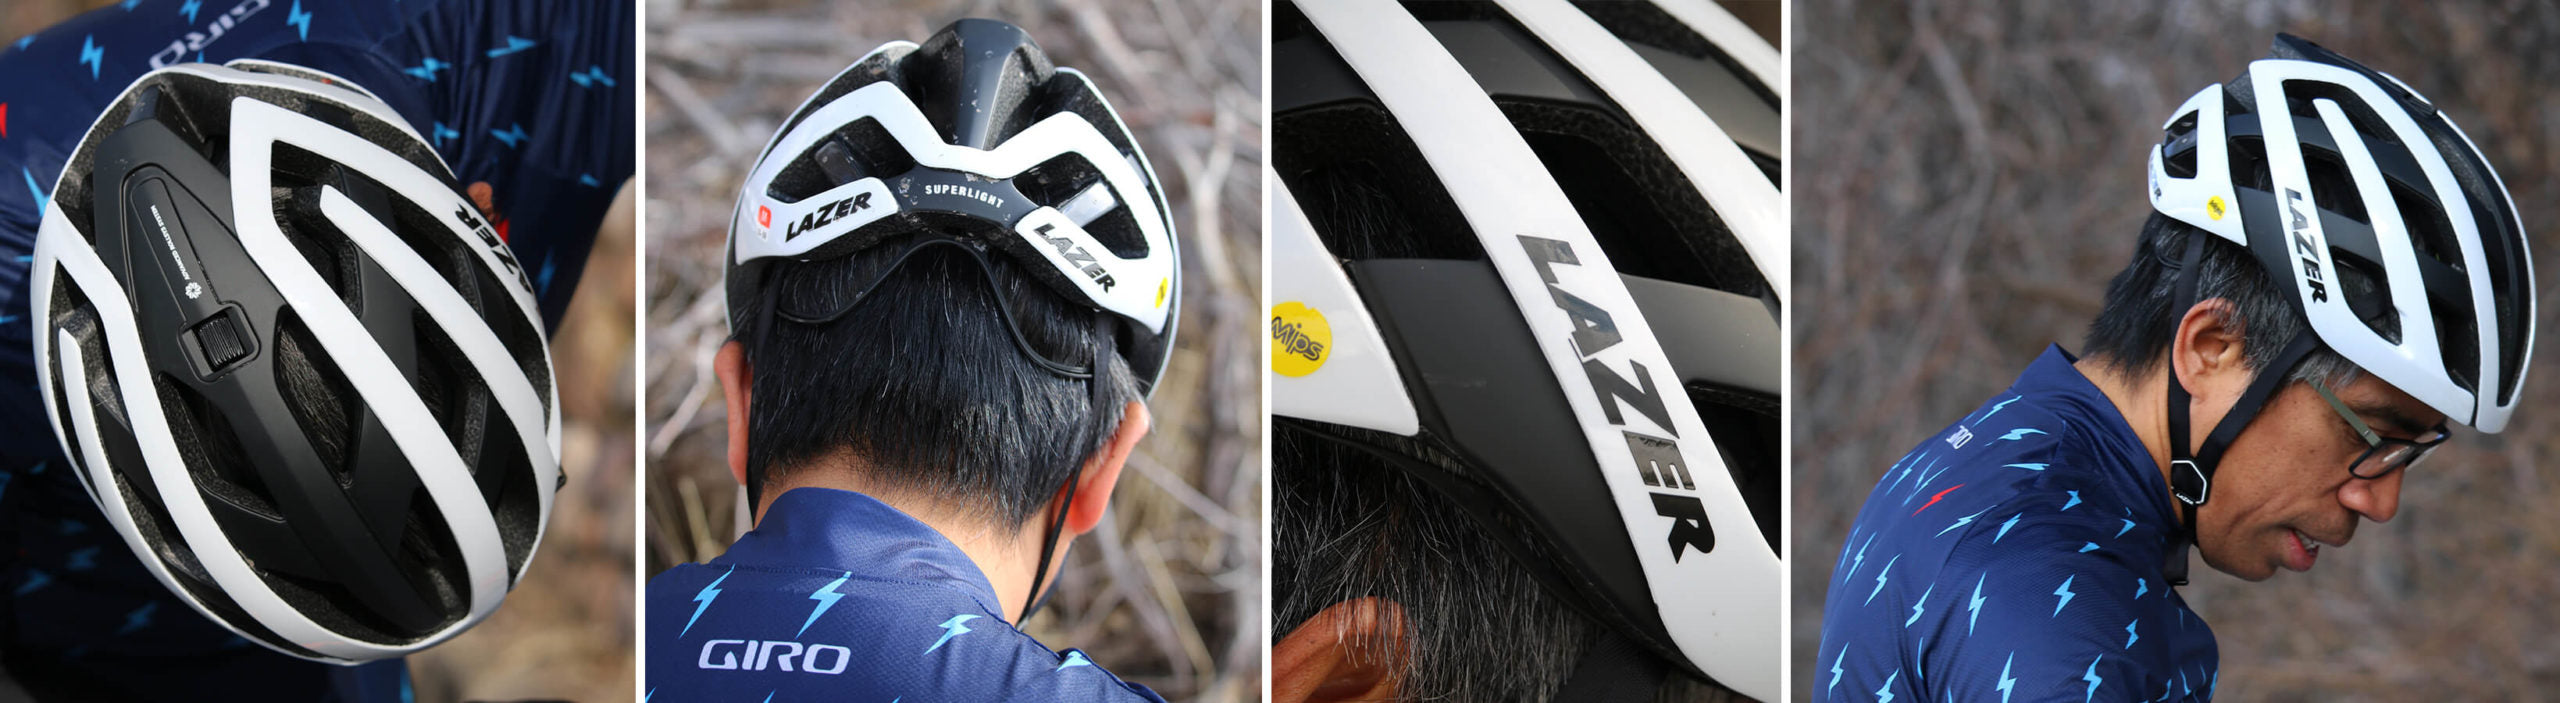 Lazer G1 MIPS Cycling Road Helmet Review - Contender Bicycles